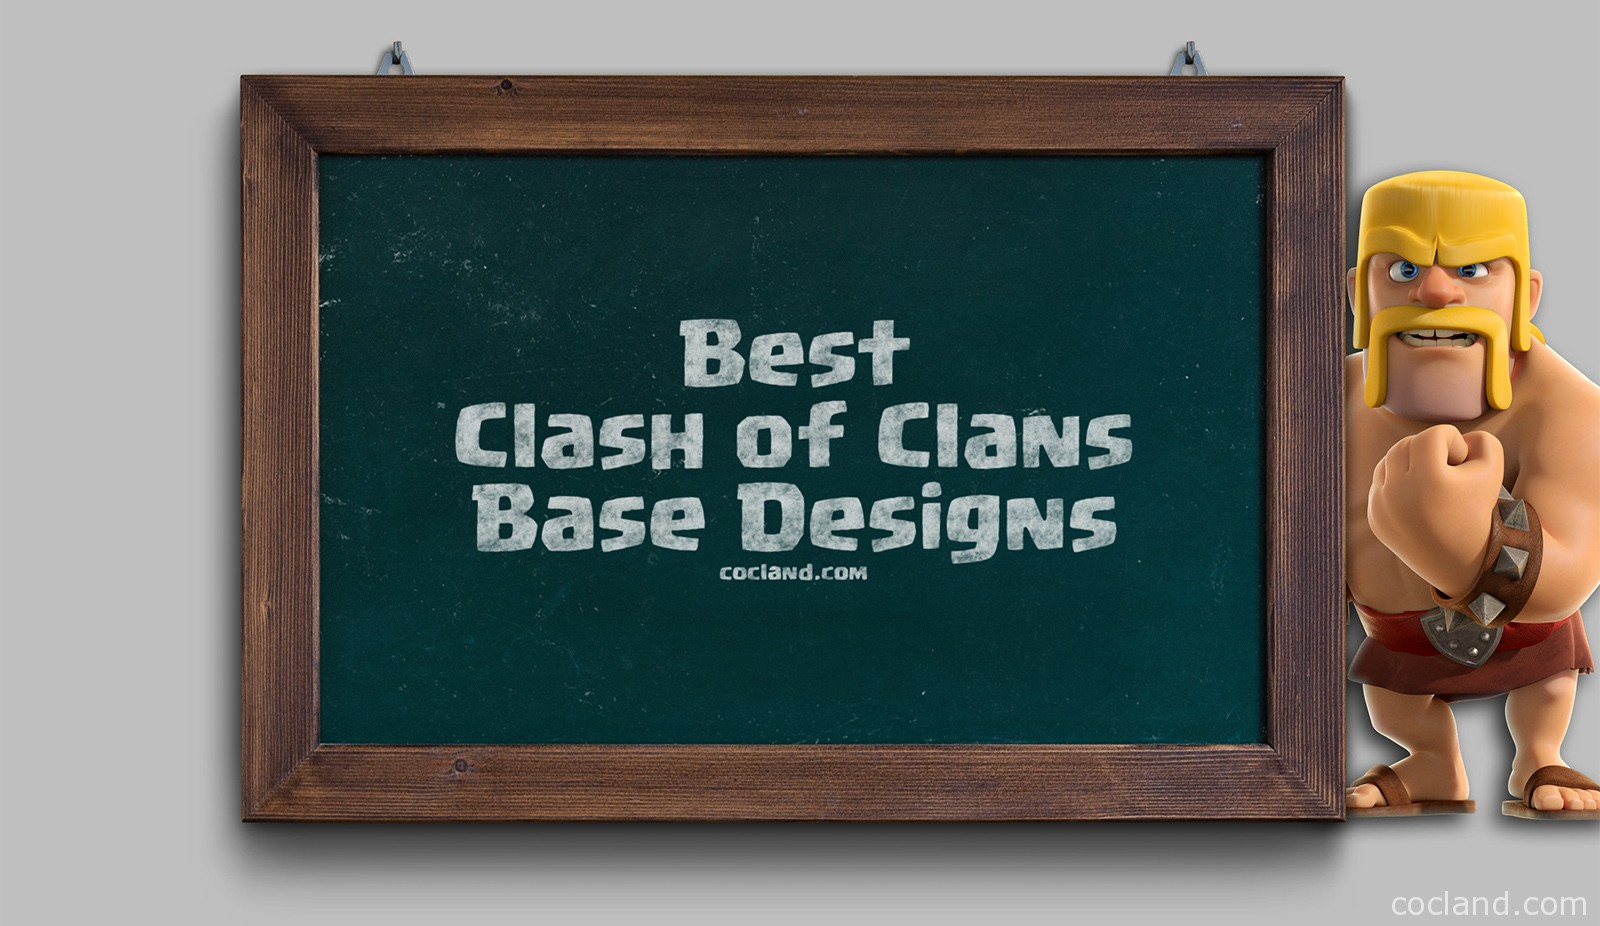 The best Clash of Clans Layouts